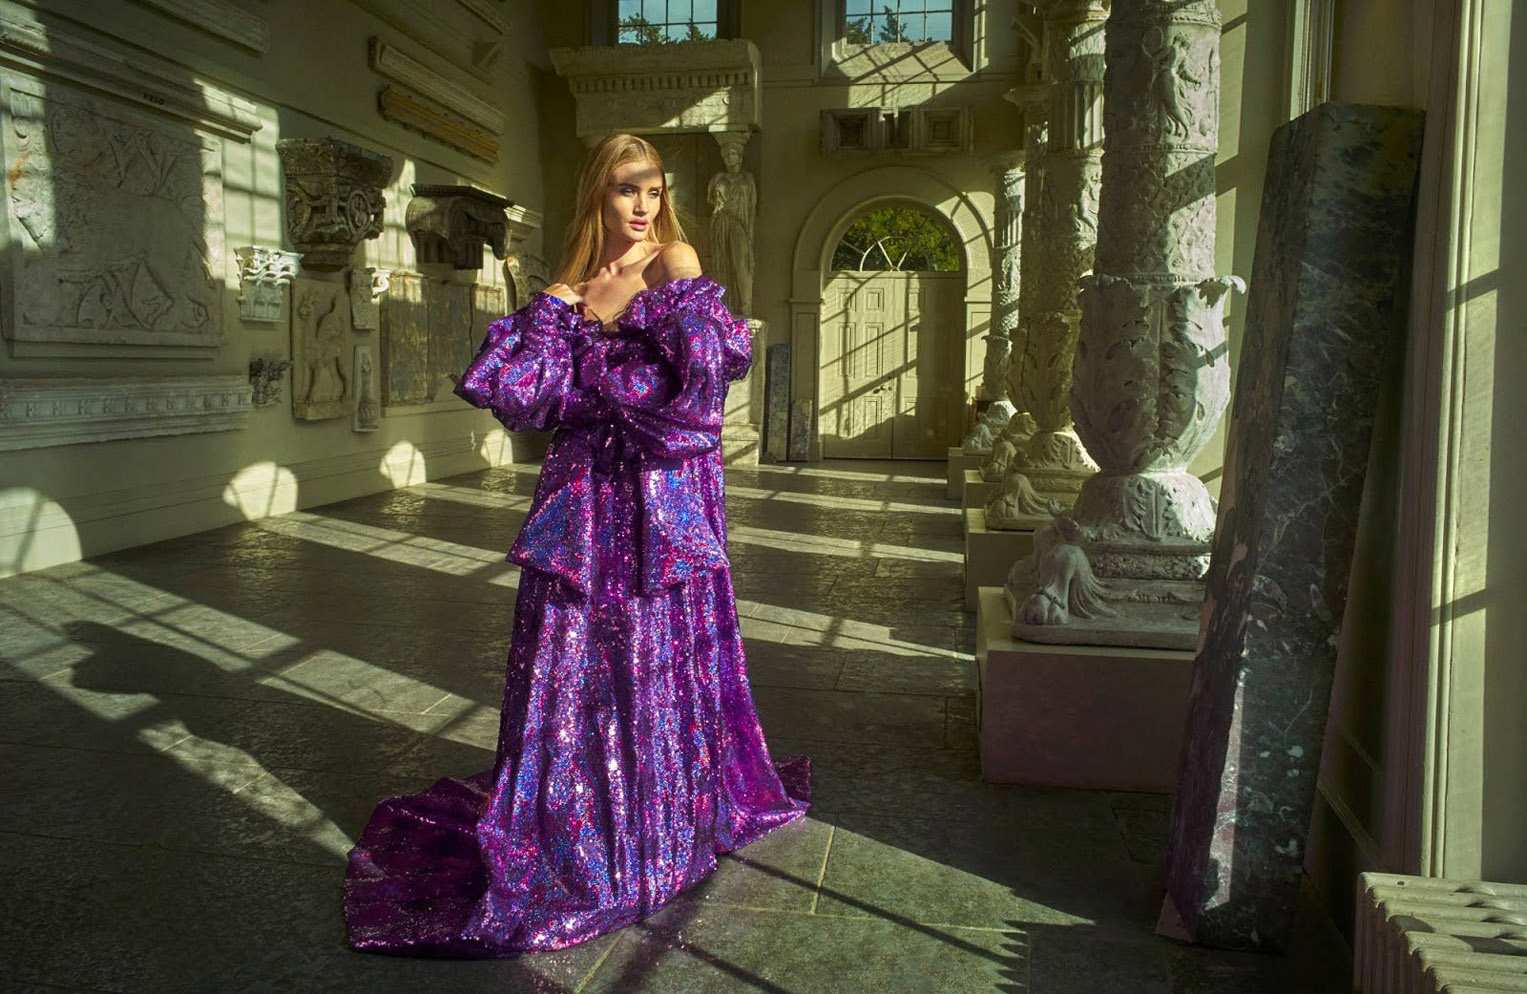 Royal Par Excellence / Rosie Huntington-Whiteley by Mariano Vivanco / Harpers Bazaar Arabia april 2018